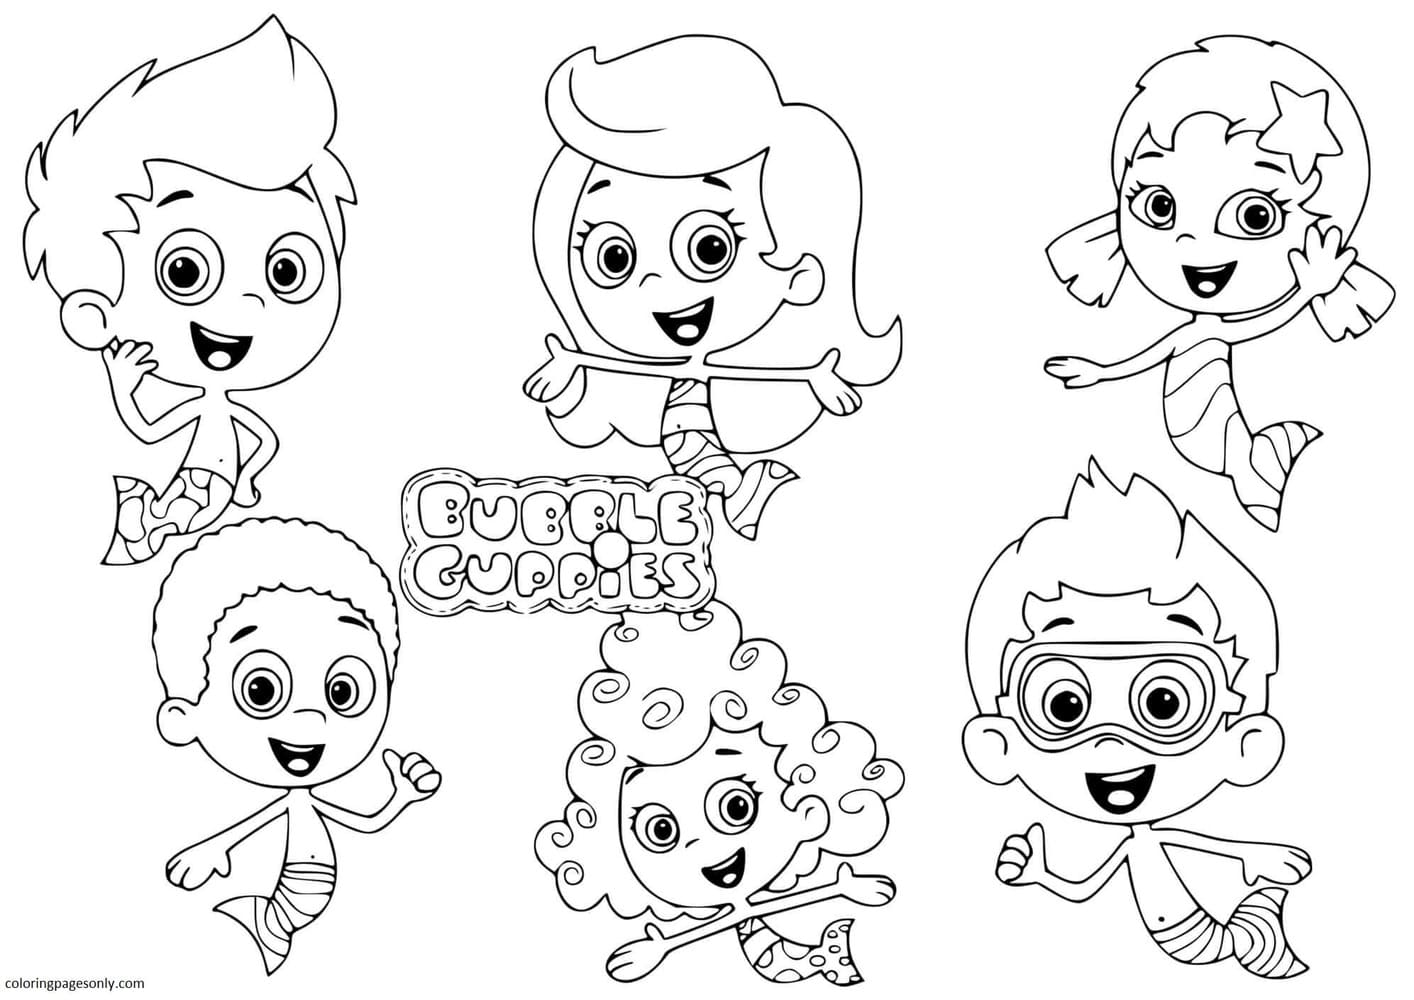 Bubble Guppies 8 Coloring Page